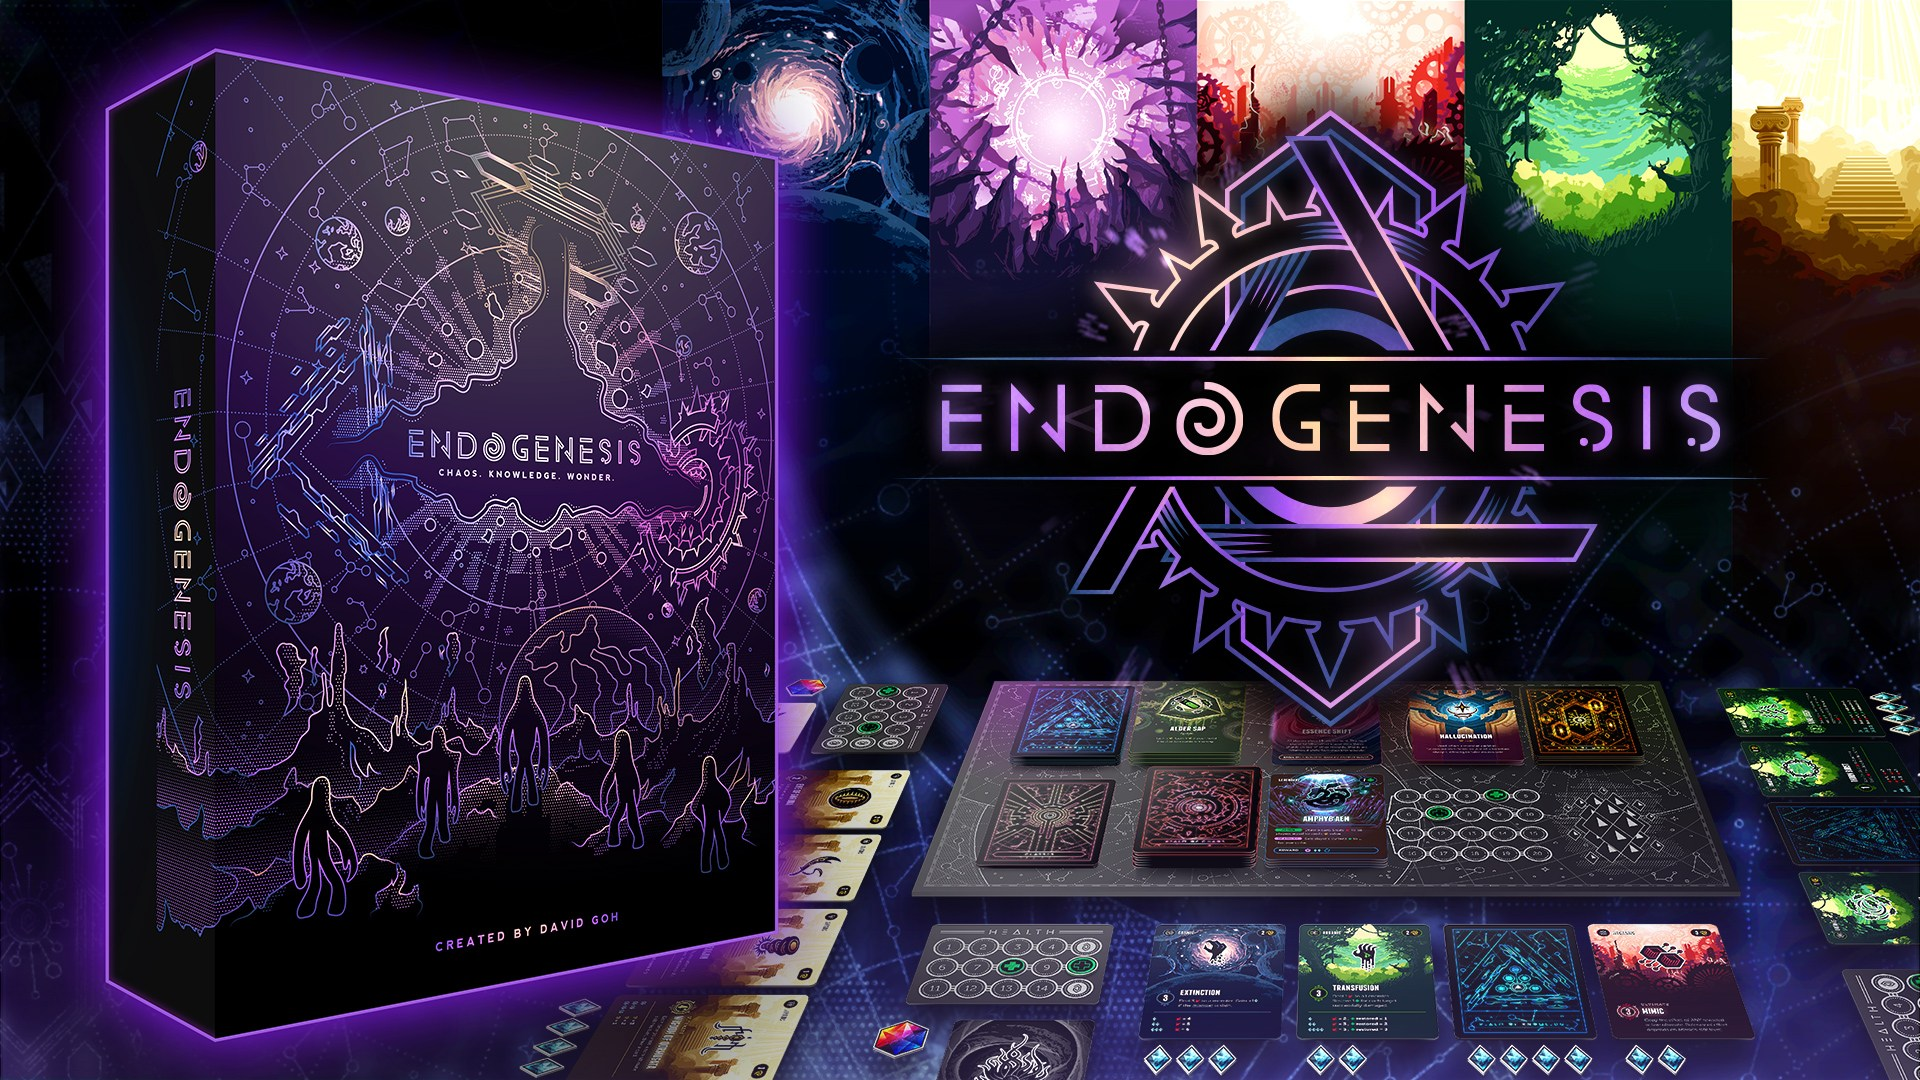 Interview with Endogenesis Creator, David Goh